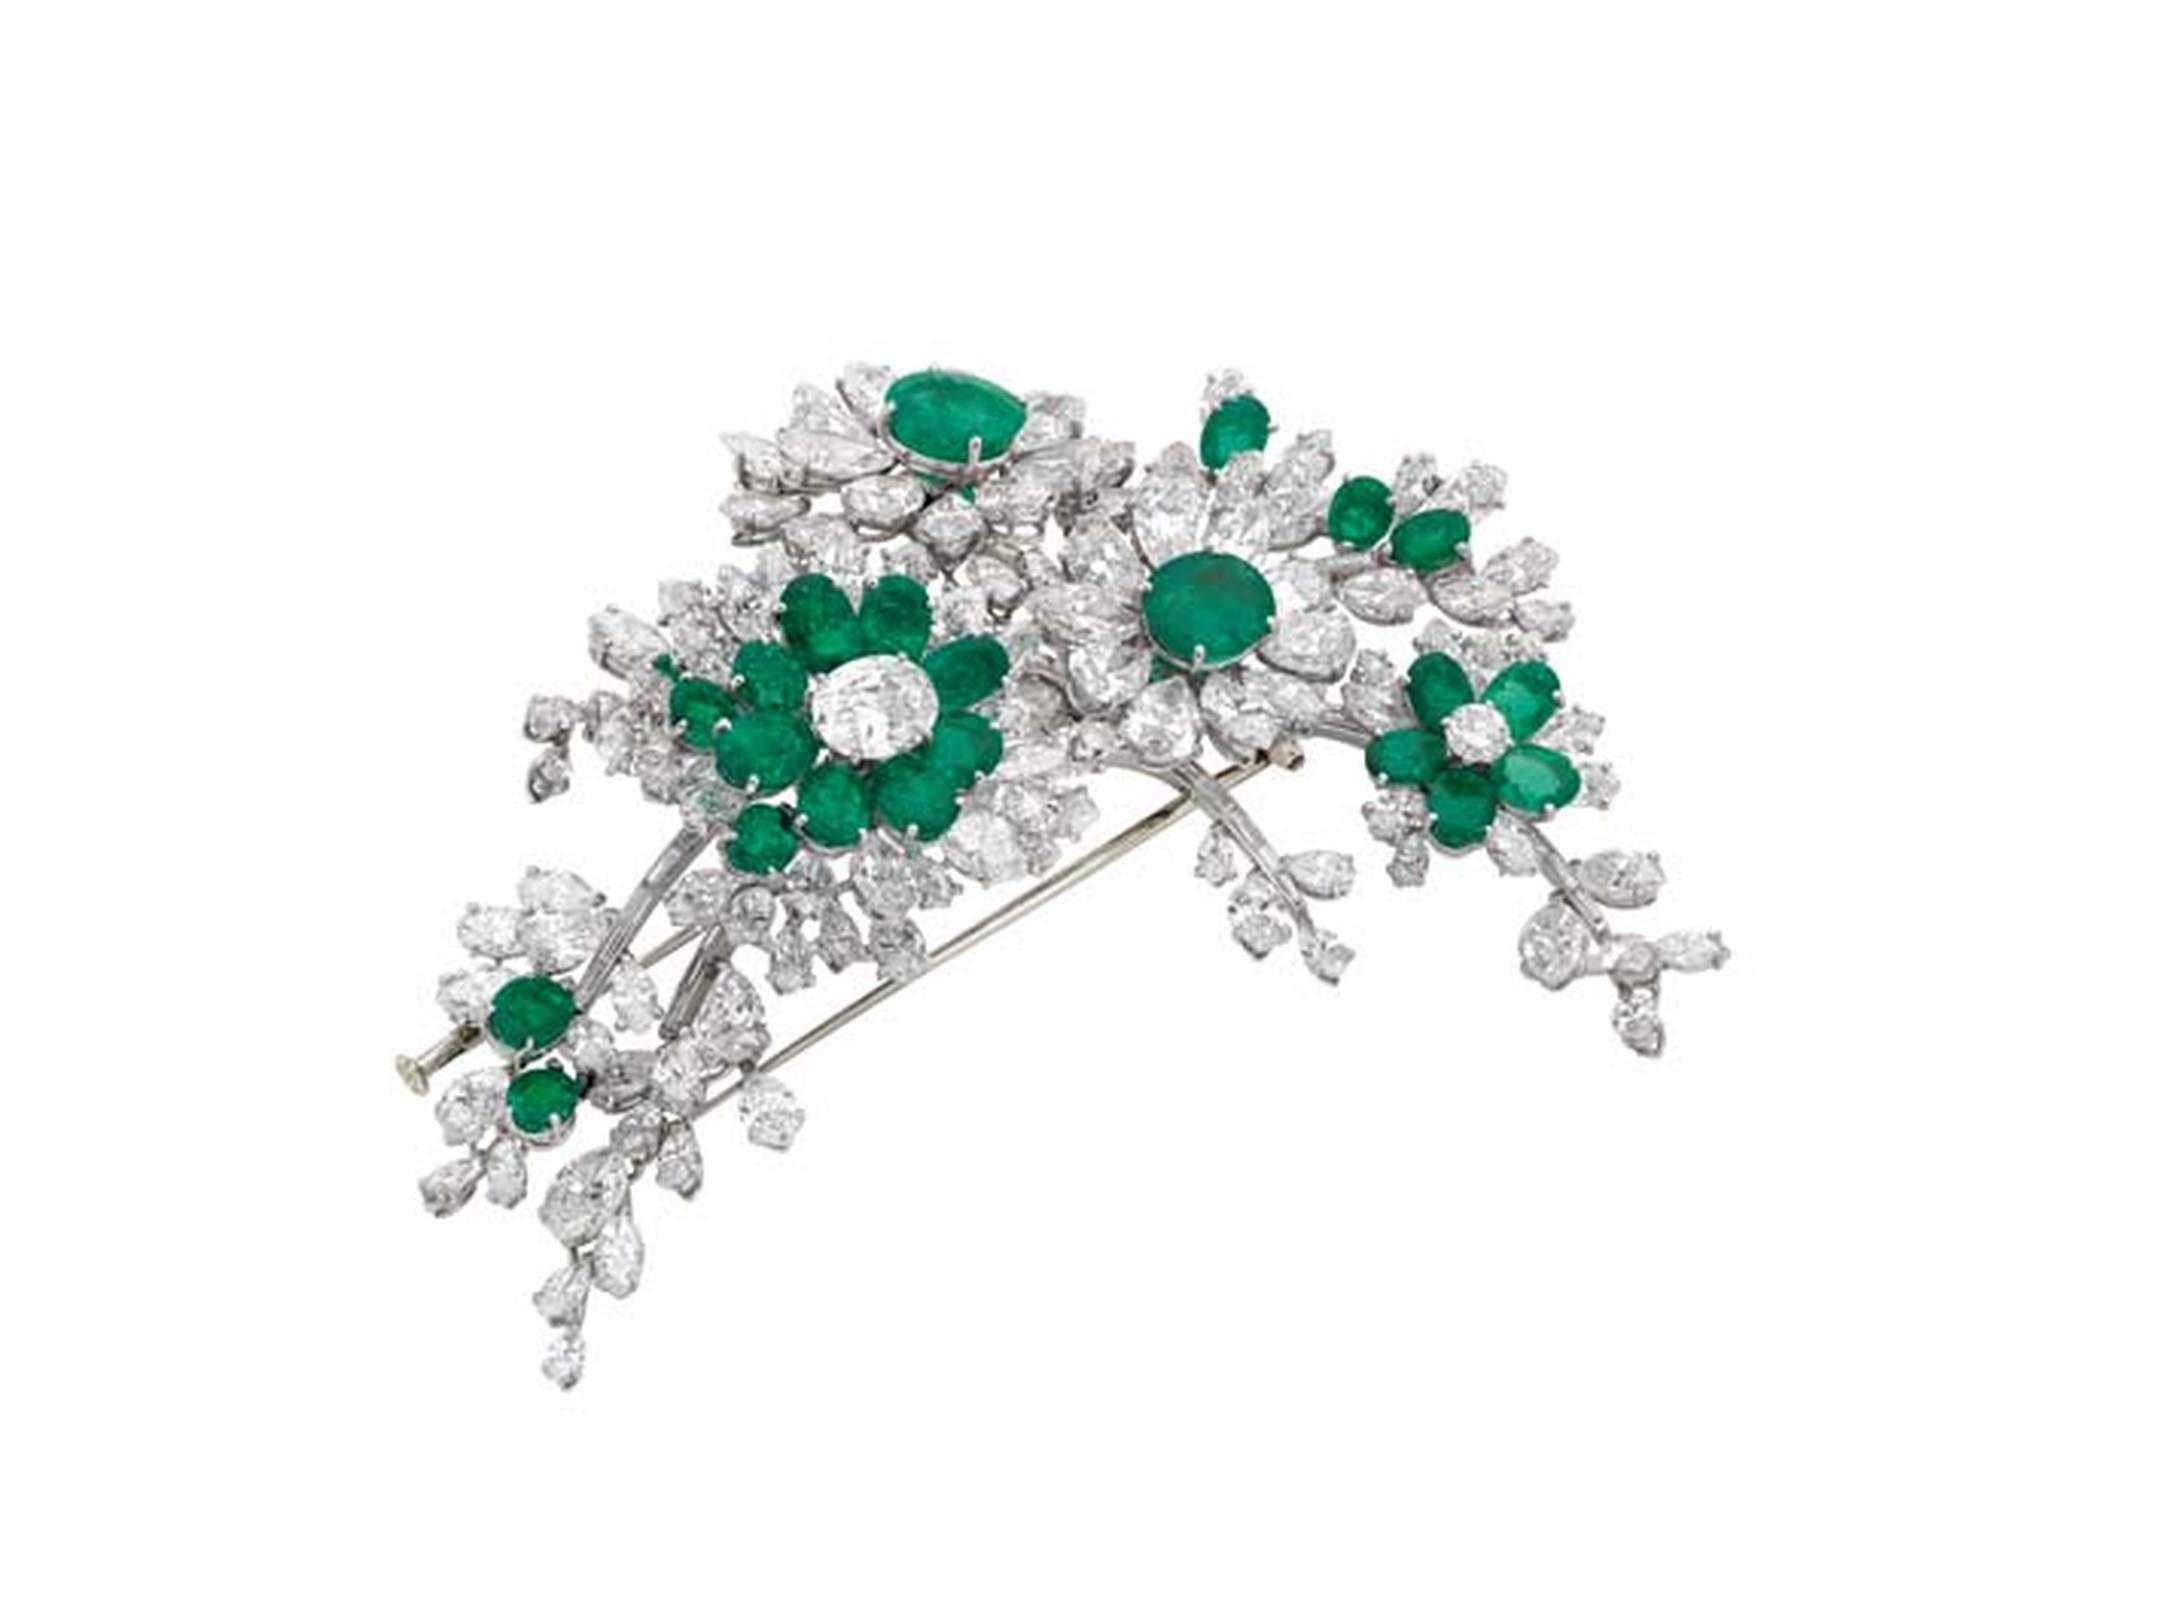 Elizabeth Taylor's Bulgari 'en tremblant' brooch in platinum, emeralds and diamonds from 1960.